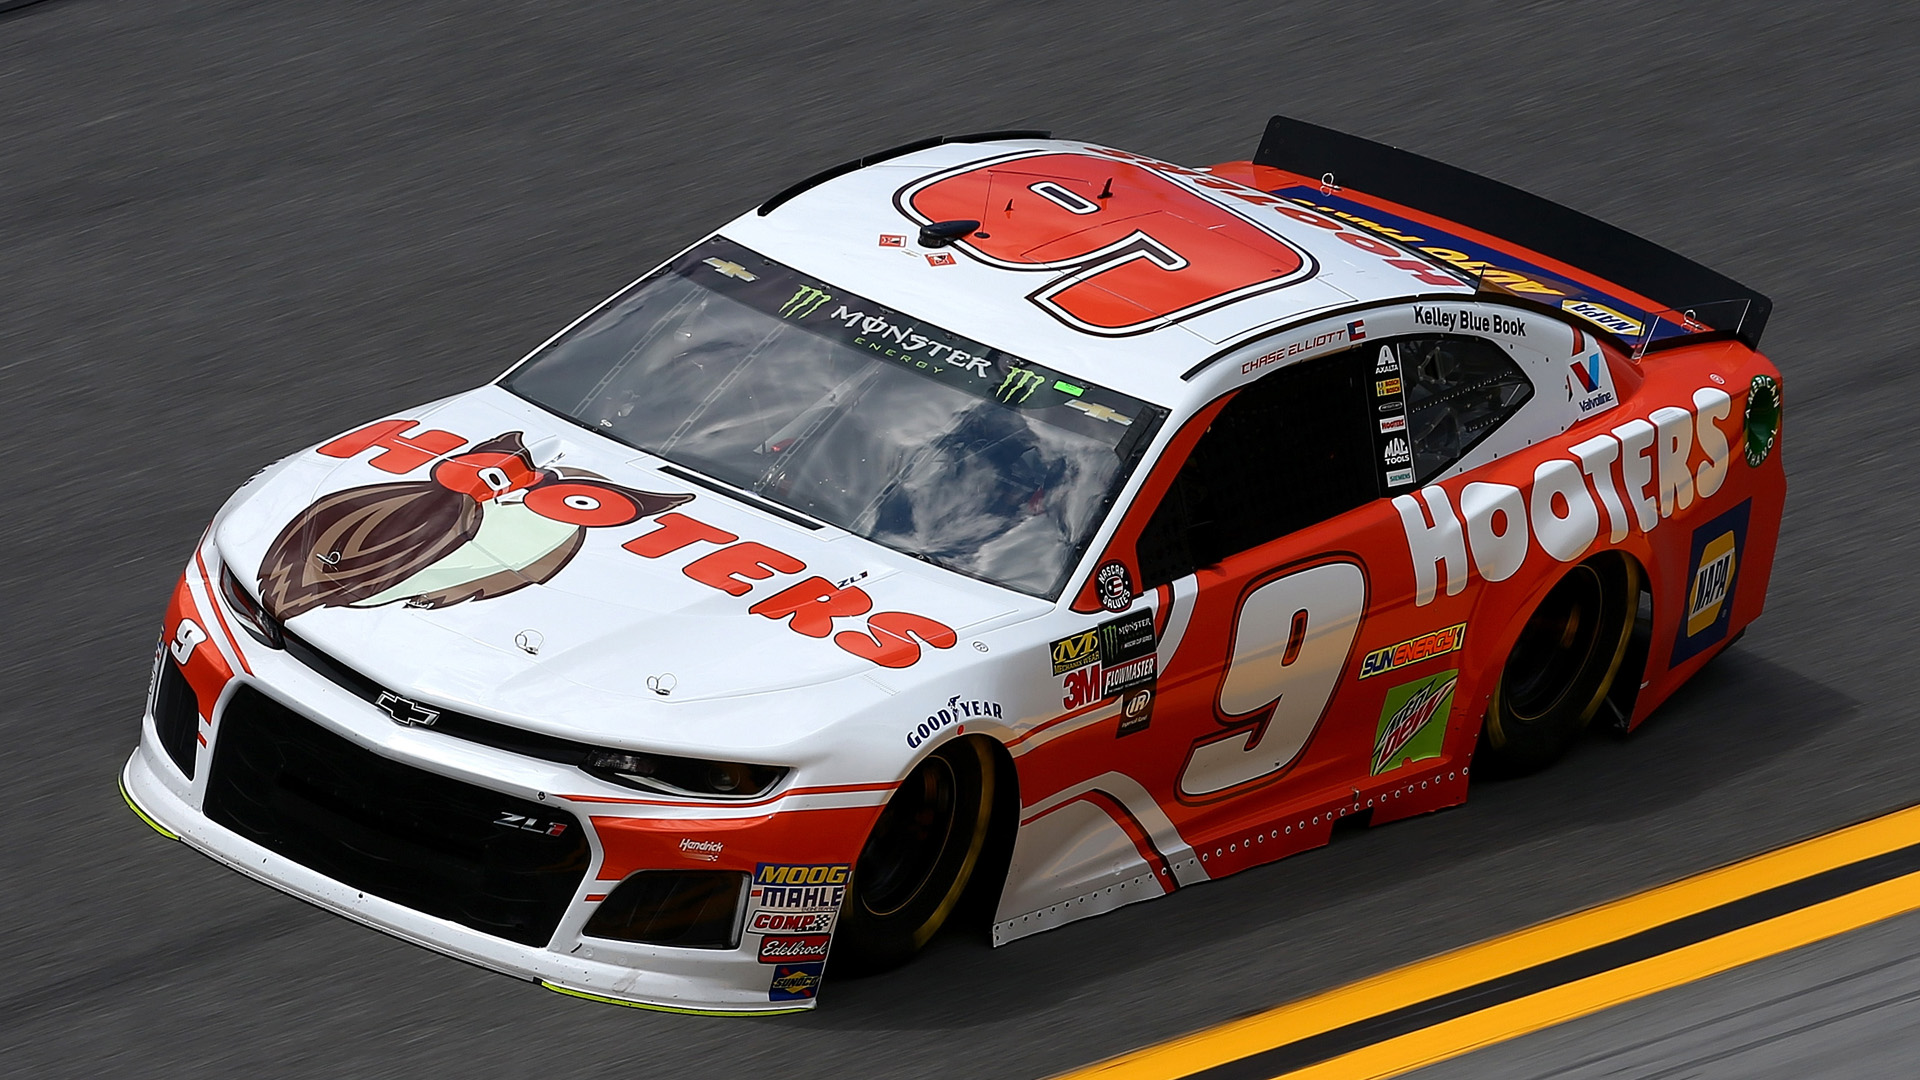 Jones earns 1st career Cup win at Daytona